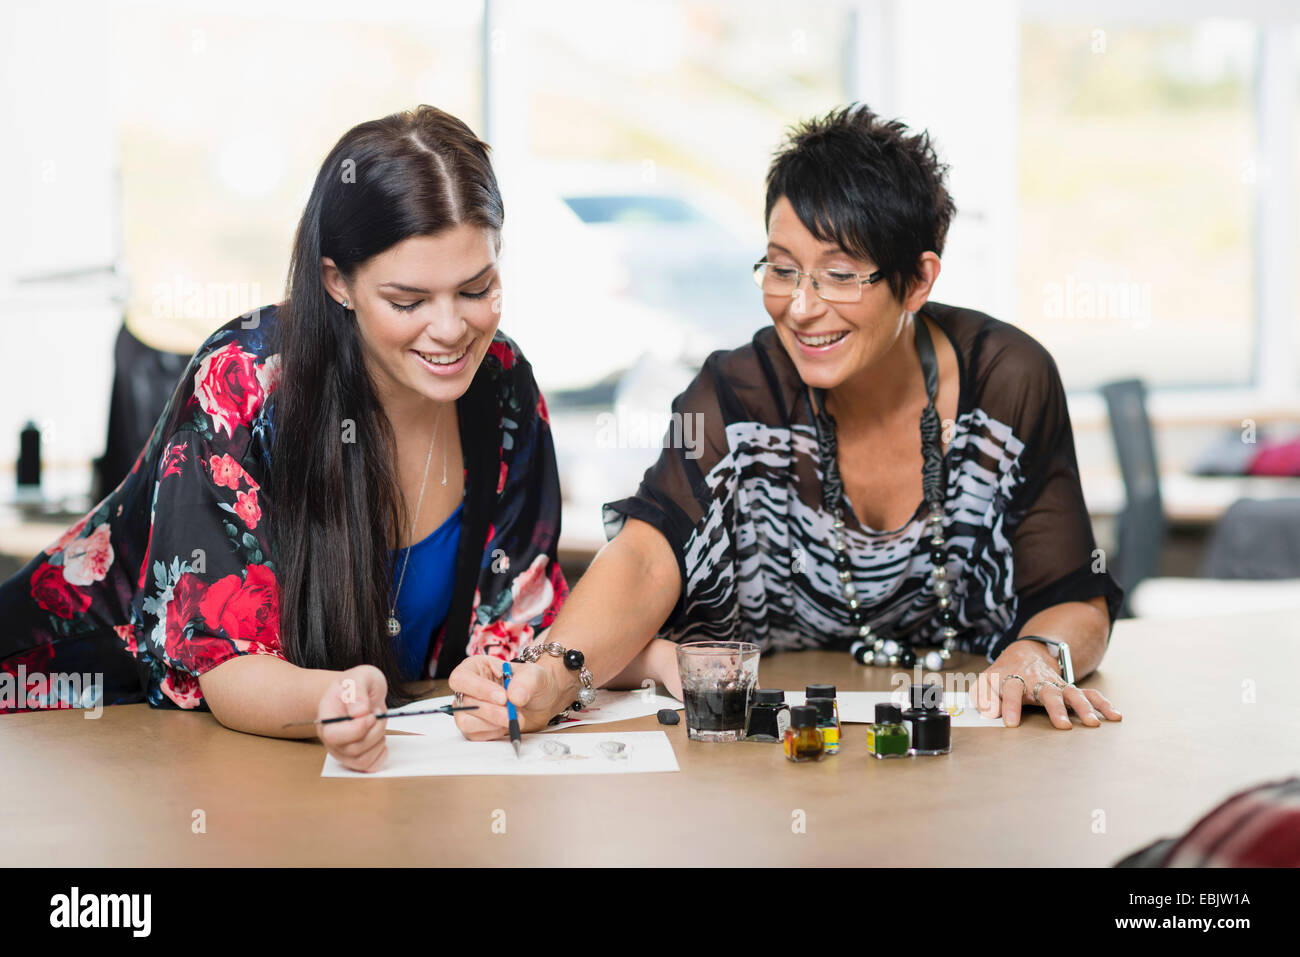 Two seamstresses painting fashion design on work table - Stock Image